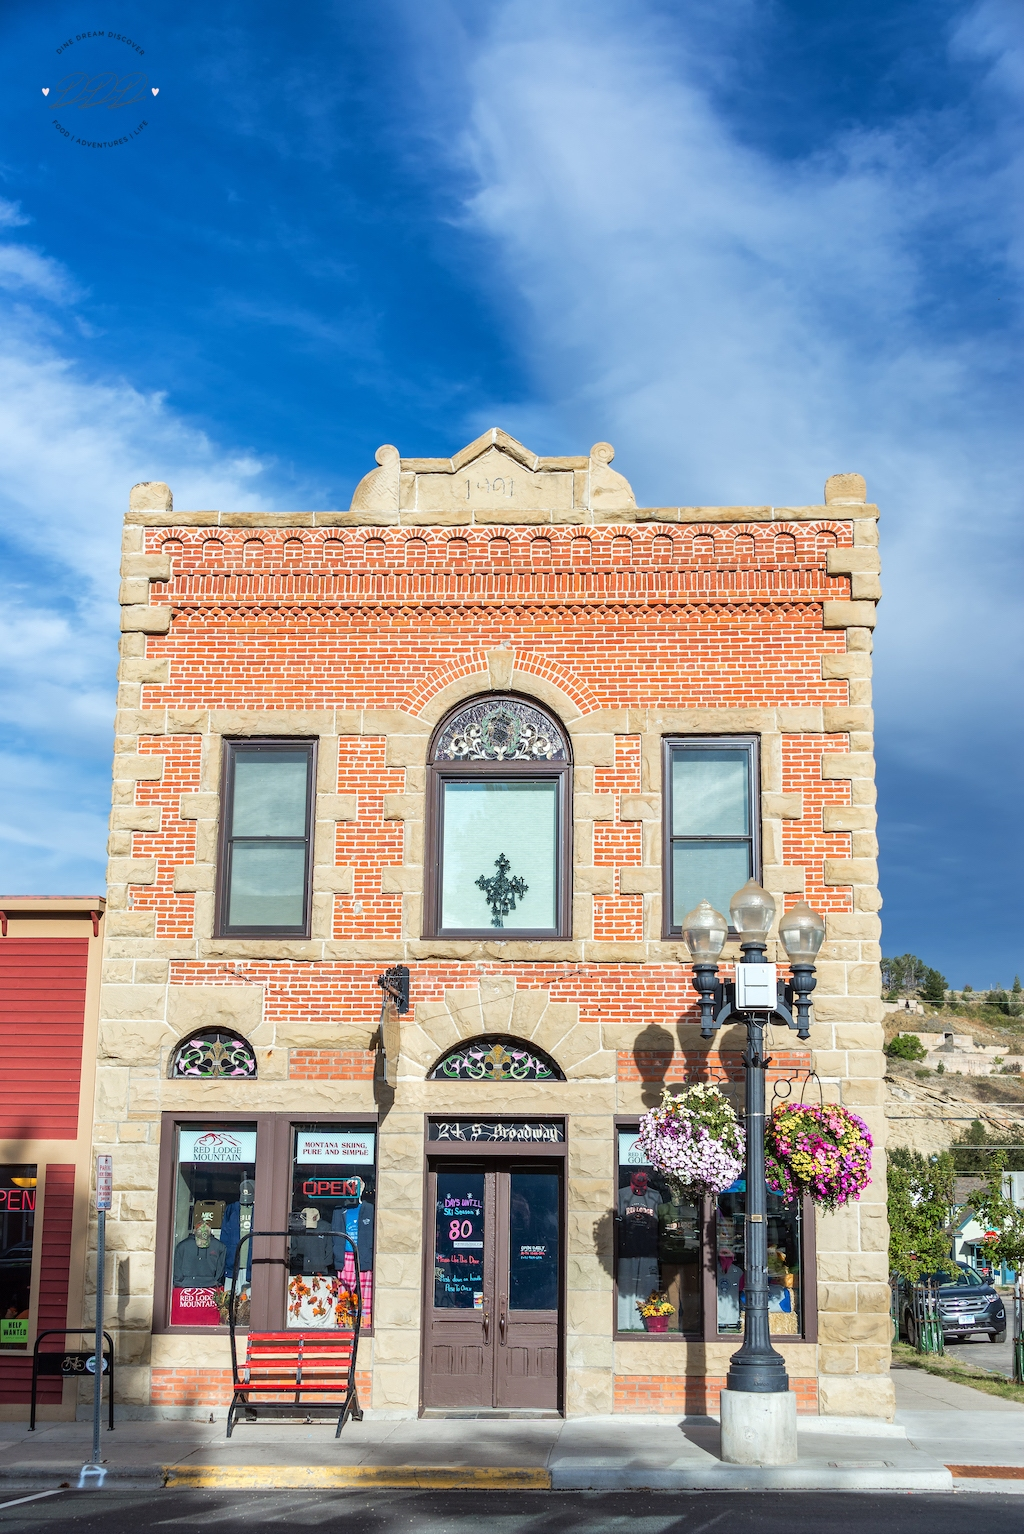 Perfectly situated, Billings Montana day trips take you to out to nature as well as maybe spending a day taking in history and culture.